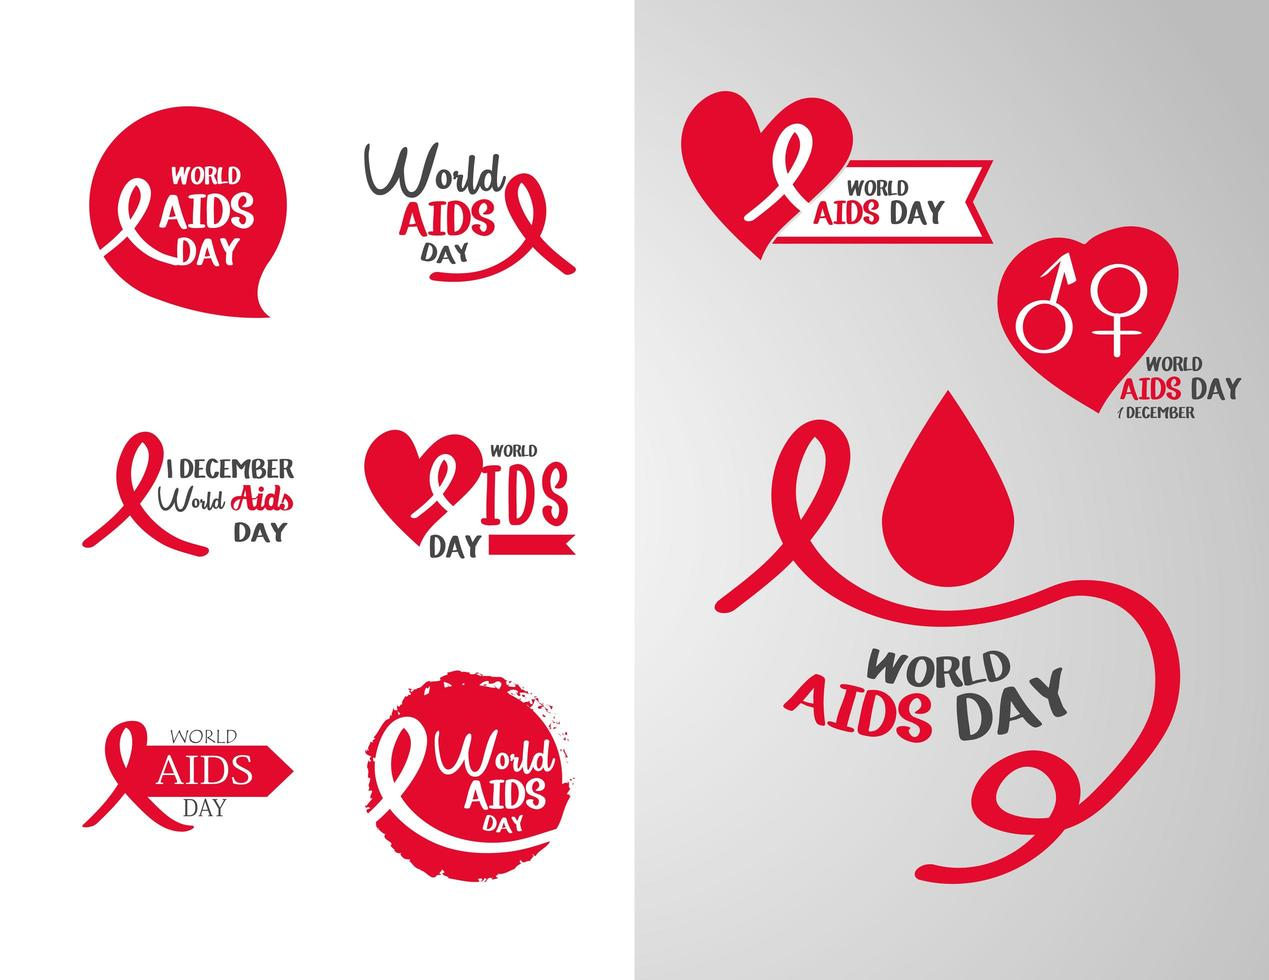 World Aids Day Awareness Icon Collection vektor